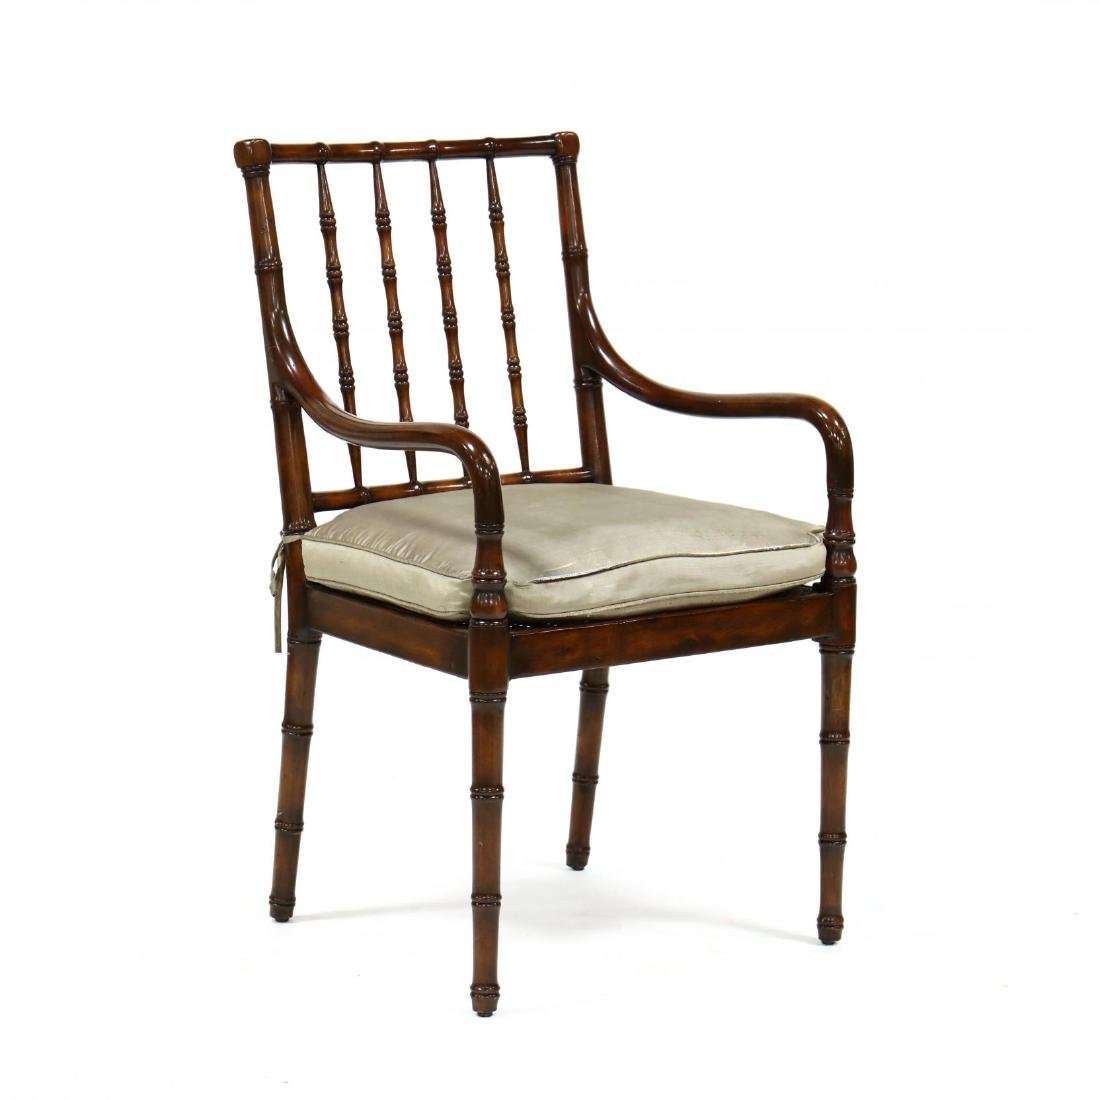 A Contemporary Faux Bamboo Carved Arm Chair